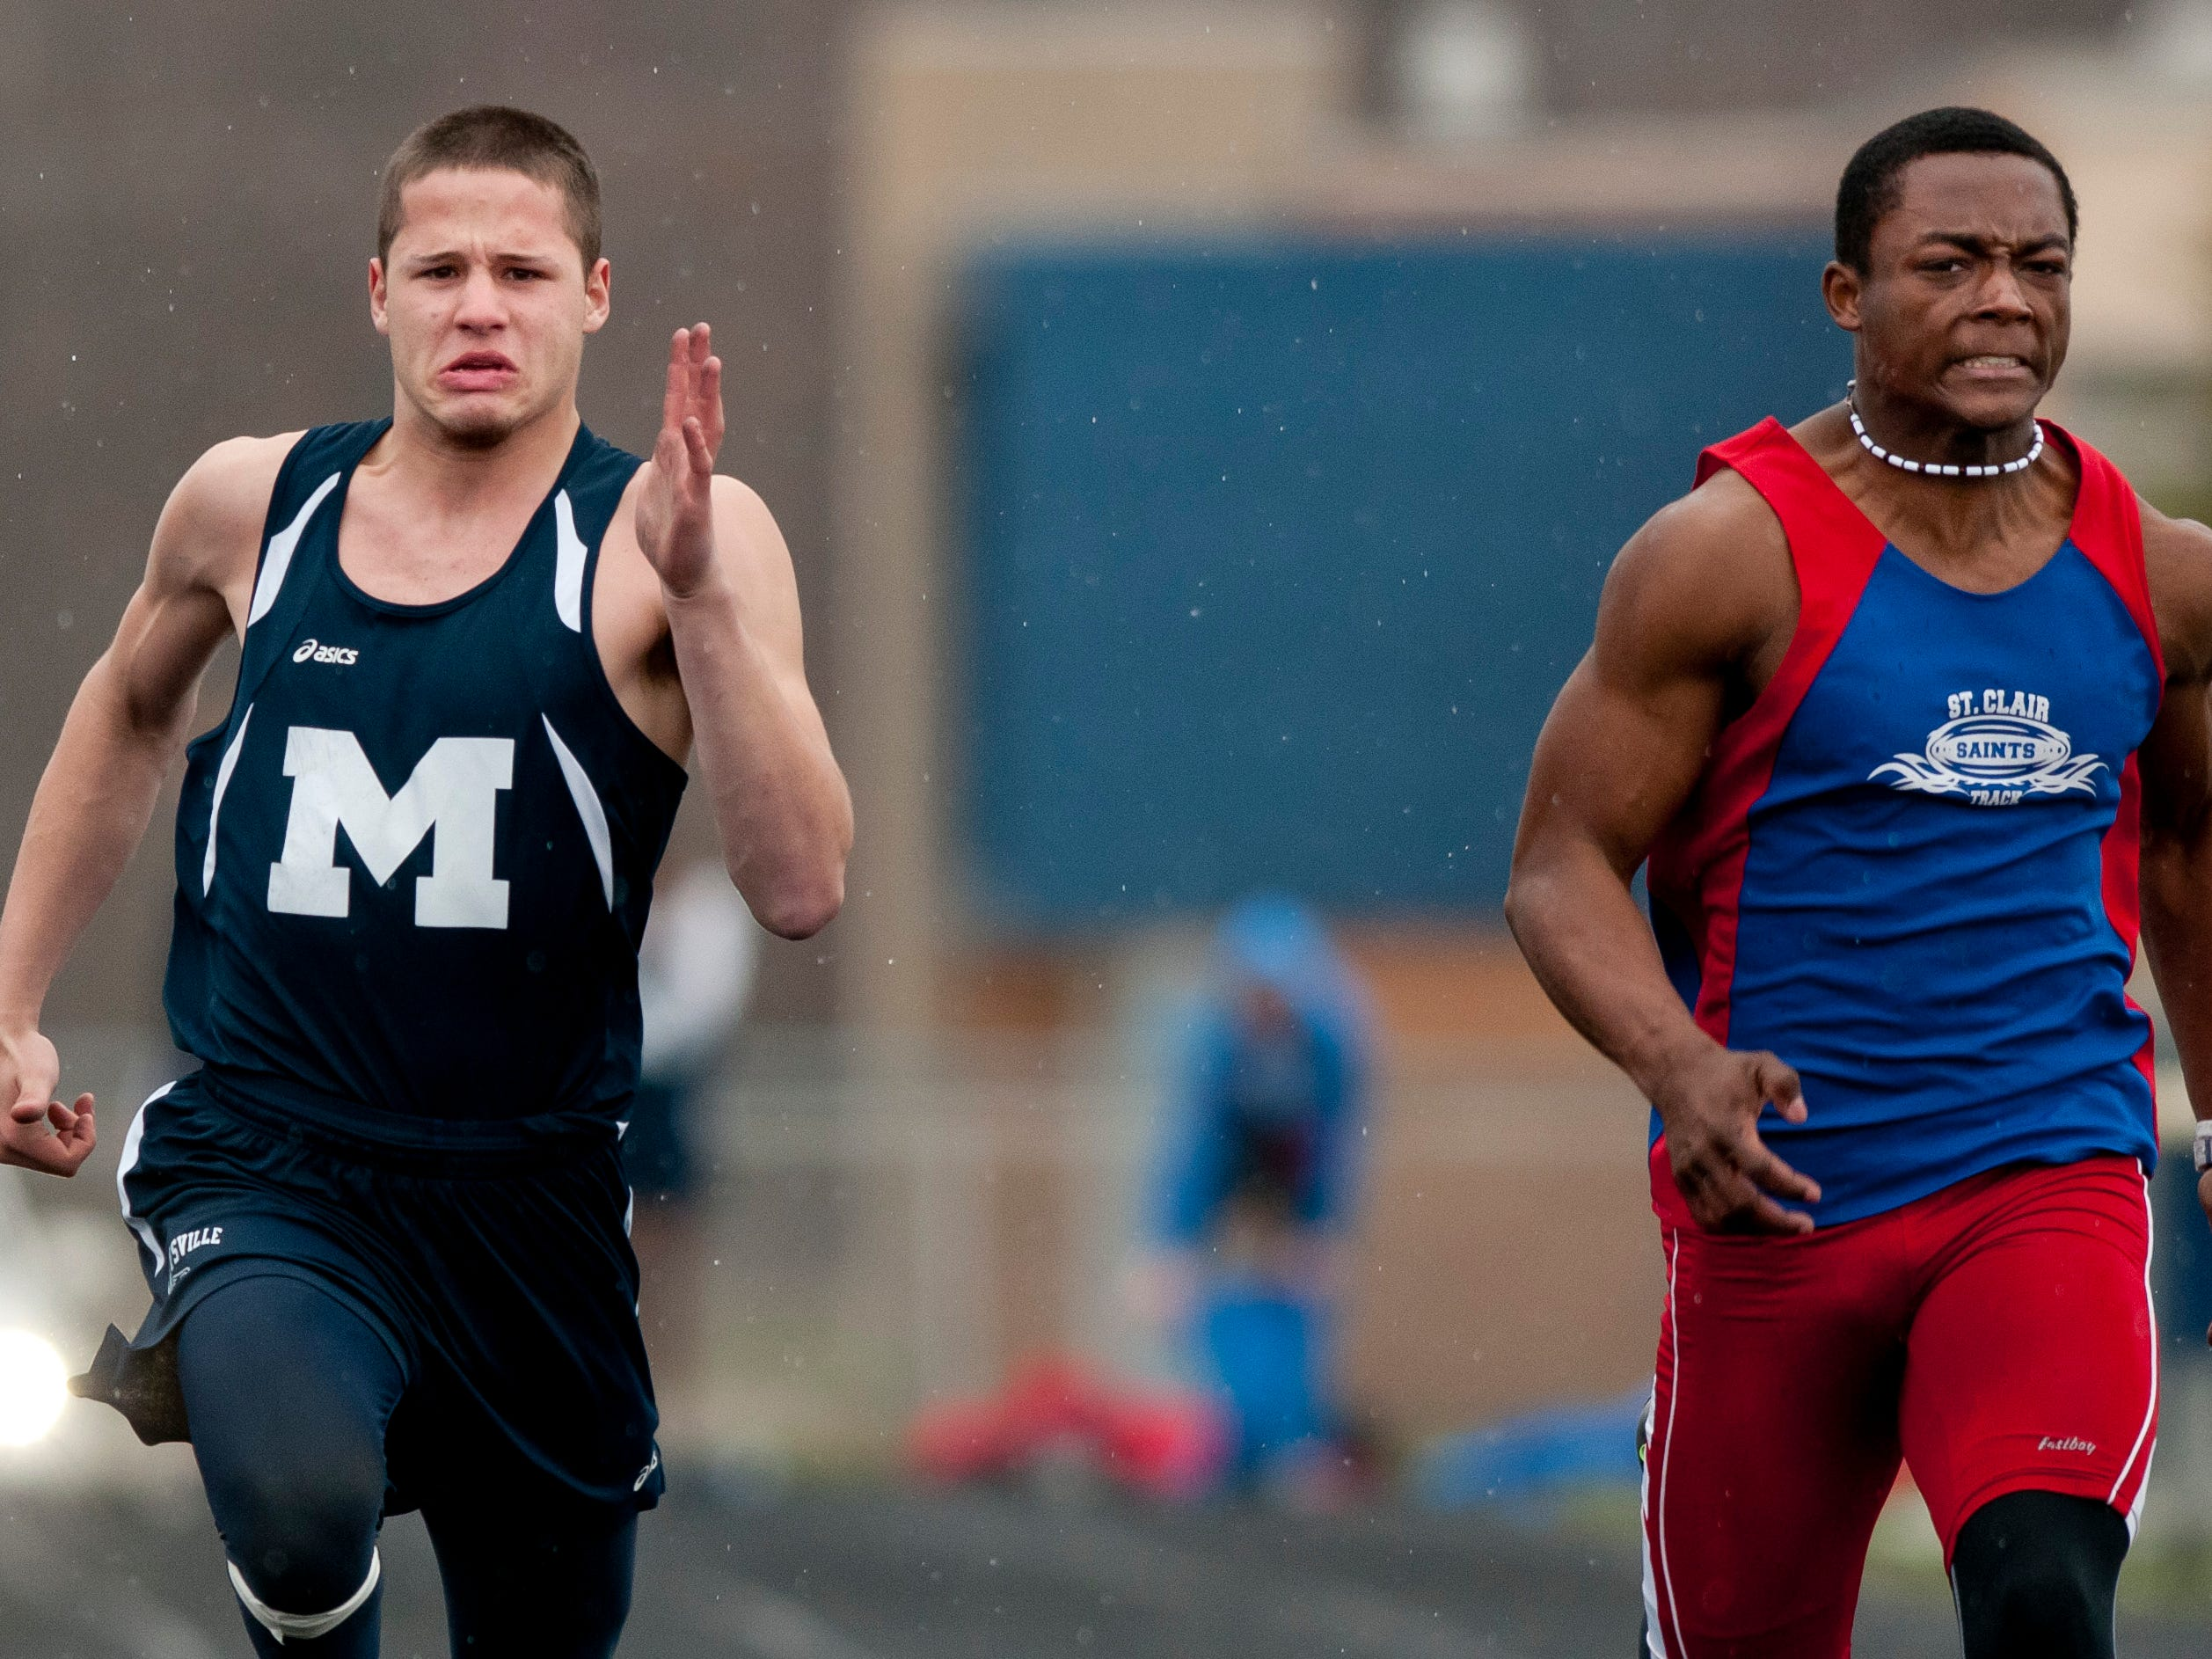 Marysville junior Seth Zeller and St. Clair sophomore Cameron Williams compete in the 100-meter dash during a track meet Thursday, April 30, 2015 at Marysville High School.